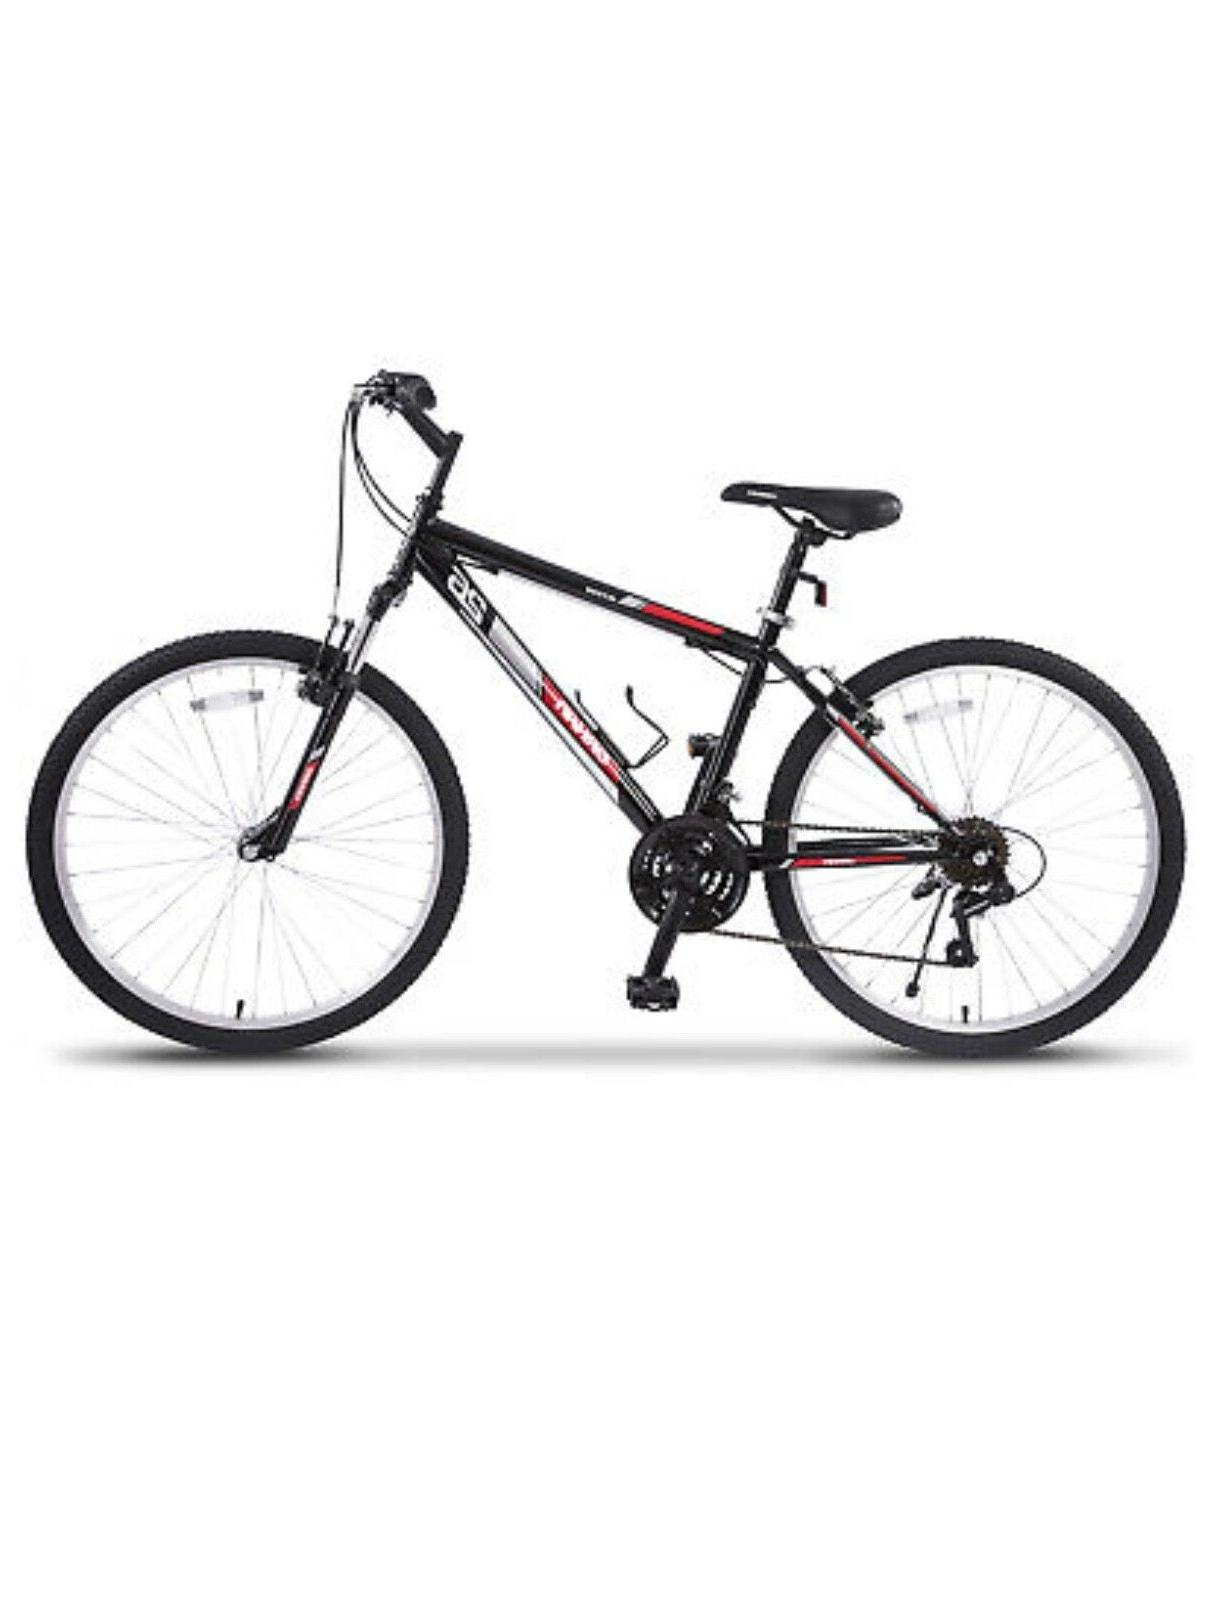 "18 Speed 26"" Mountain Bike Bicycle Shimano Hybrid Black Red"